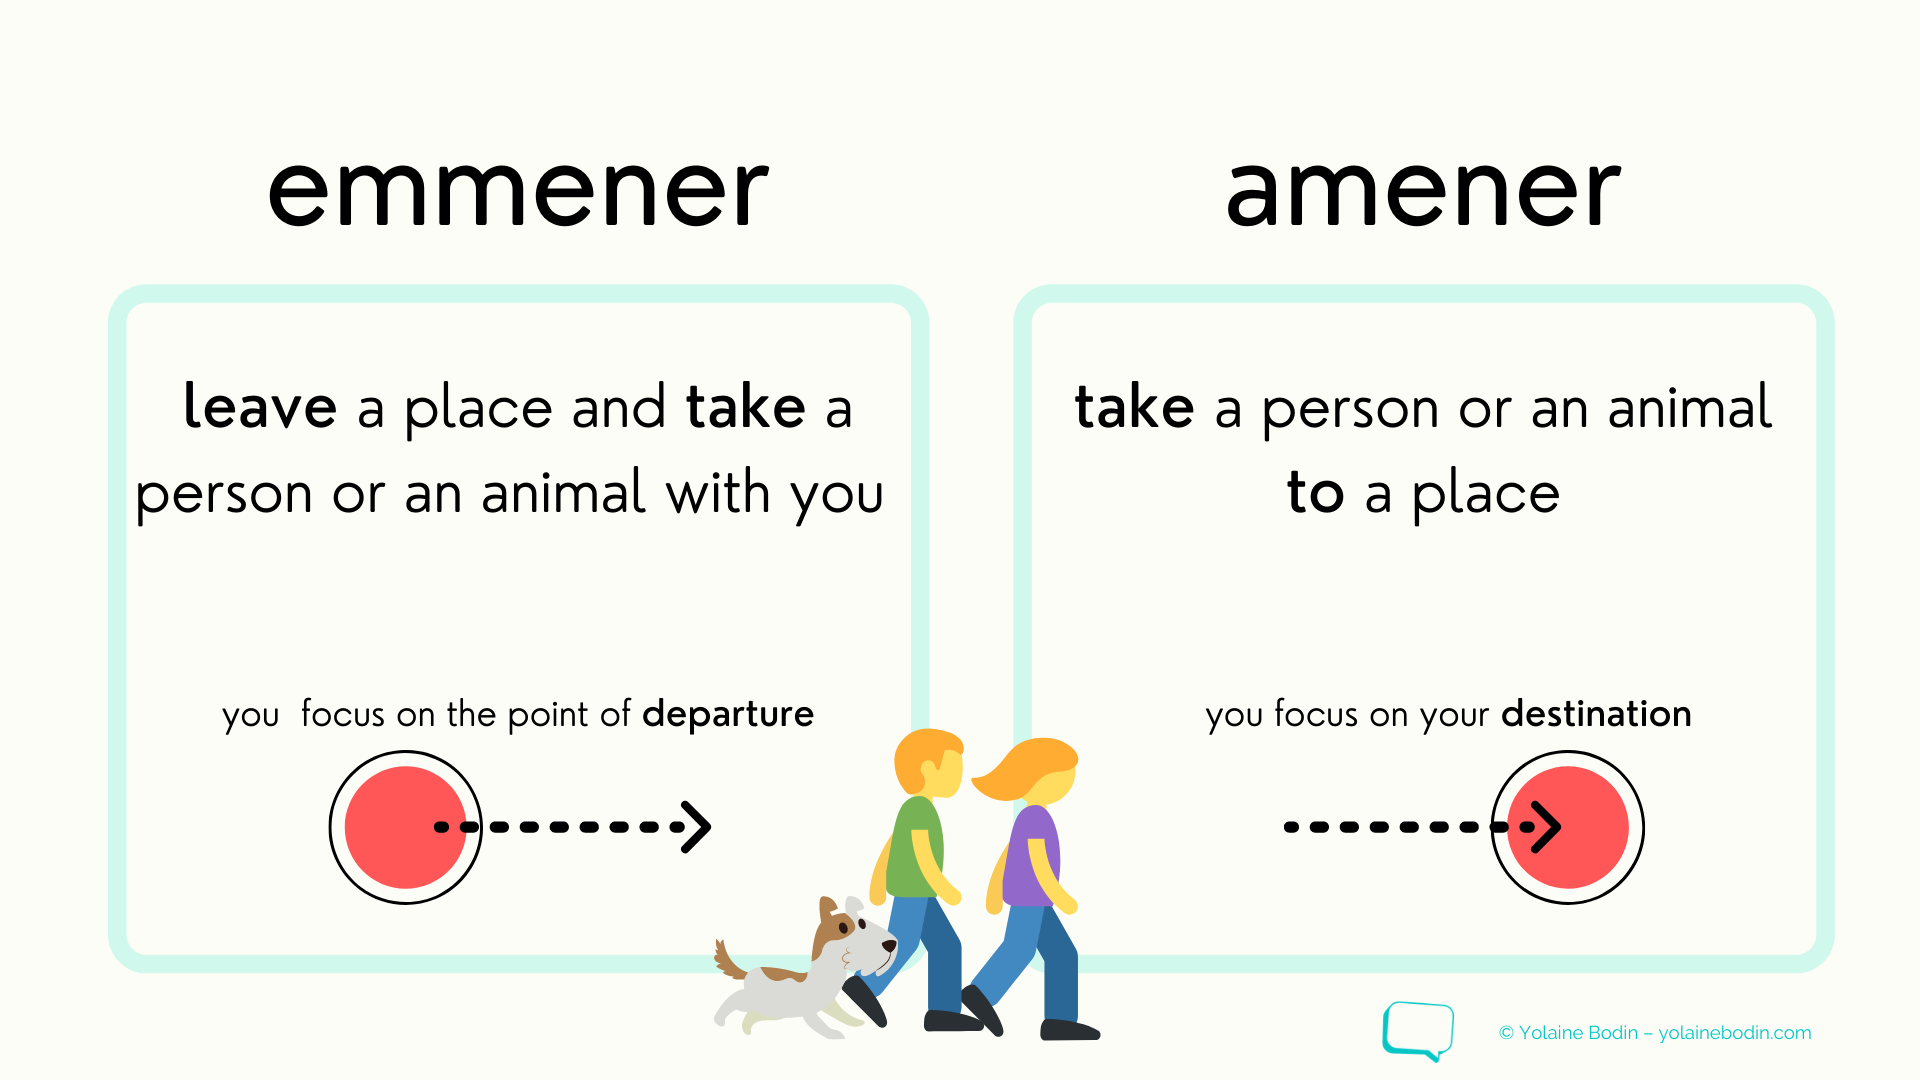 illustration to explain the difference between amener and emmener